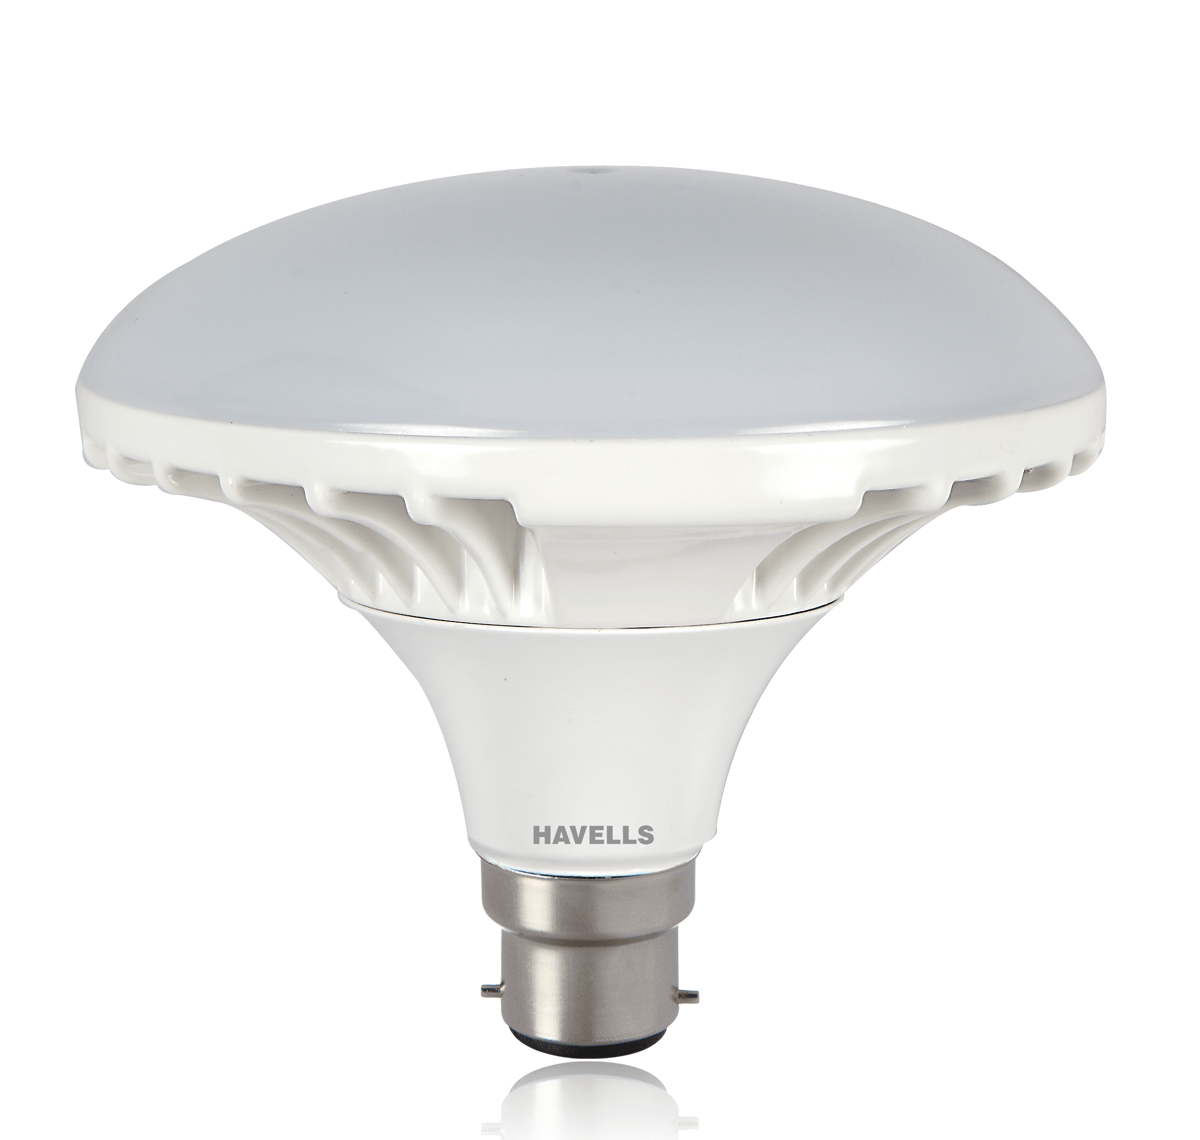 Led Online Havells Florid Led 30w High Wattage Led Lamps Online Havells India